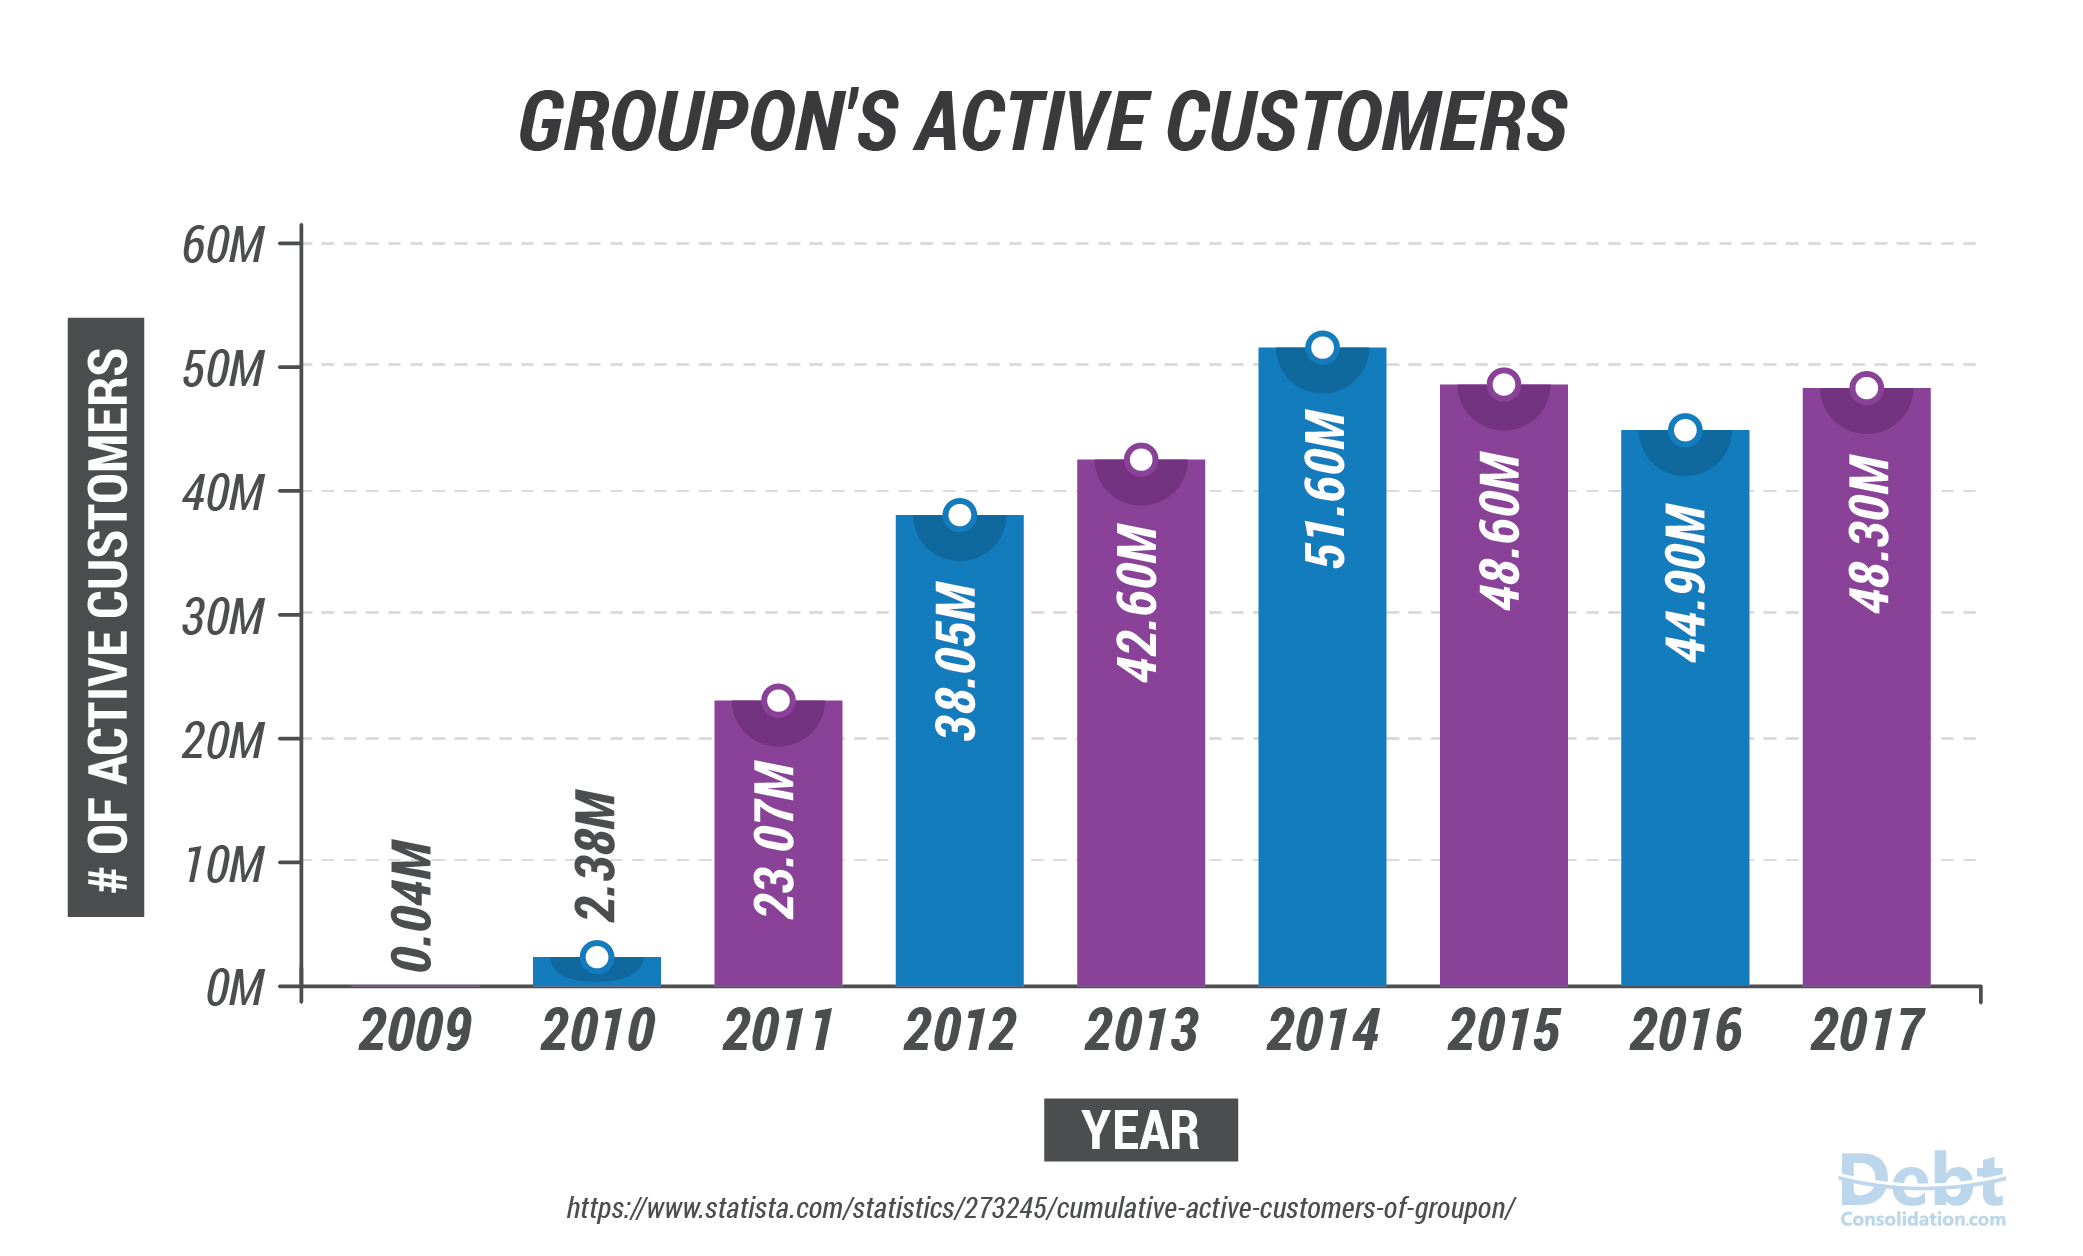 Groupon's Active Customers from 2009-2017